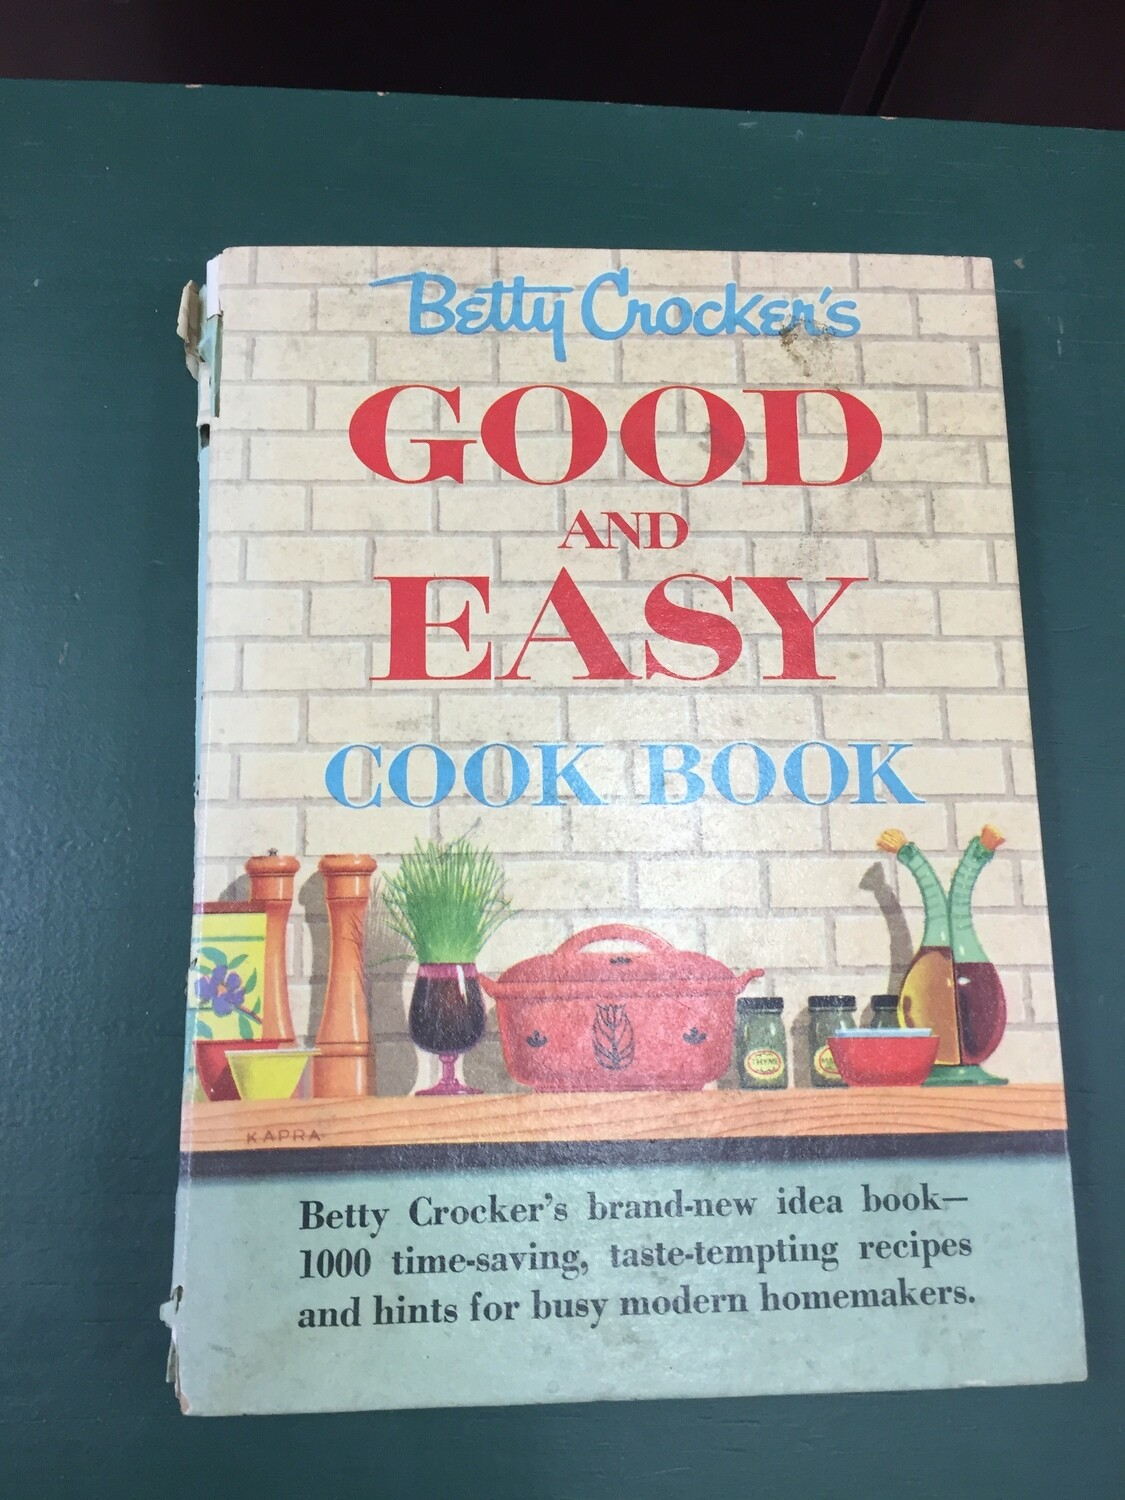 Good and Easy Cookbook